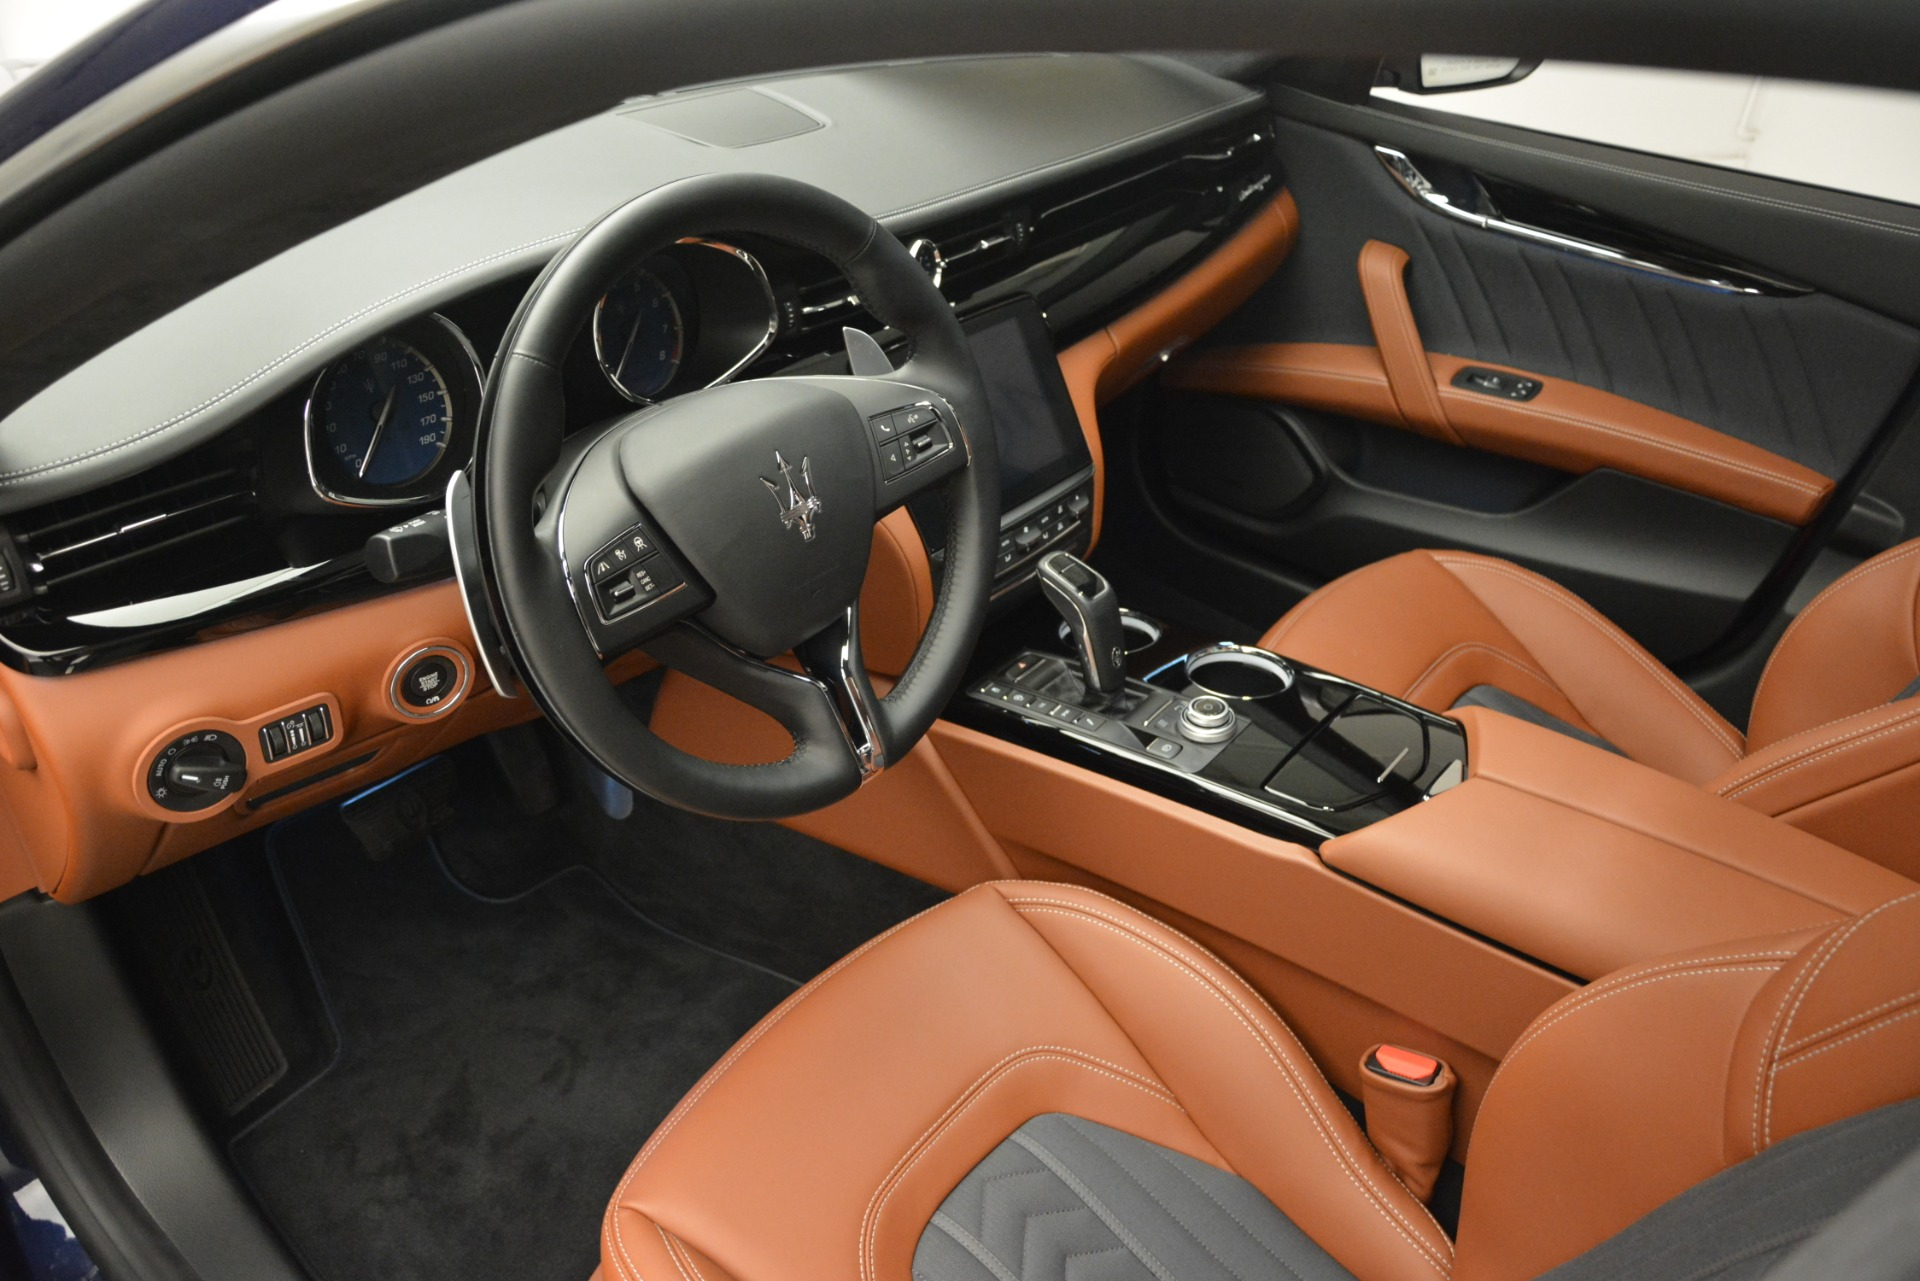 New 2019 Maserati Quattroporte S Q4 GranLusso For Sale In Greenwich, CT 2620_p14